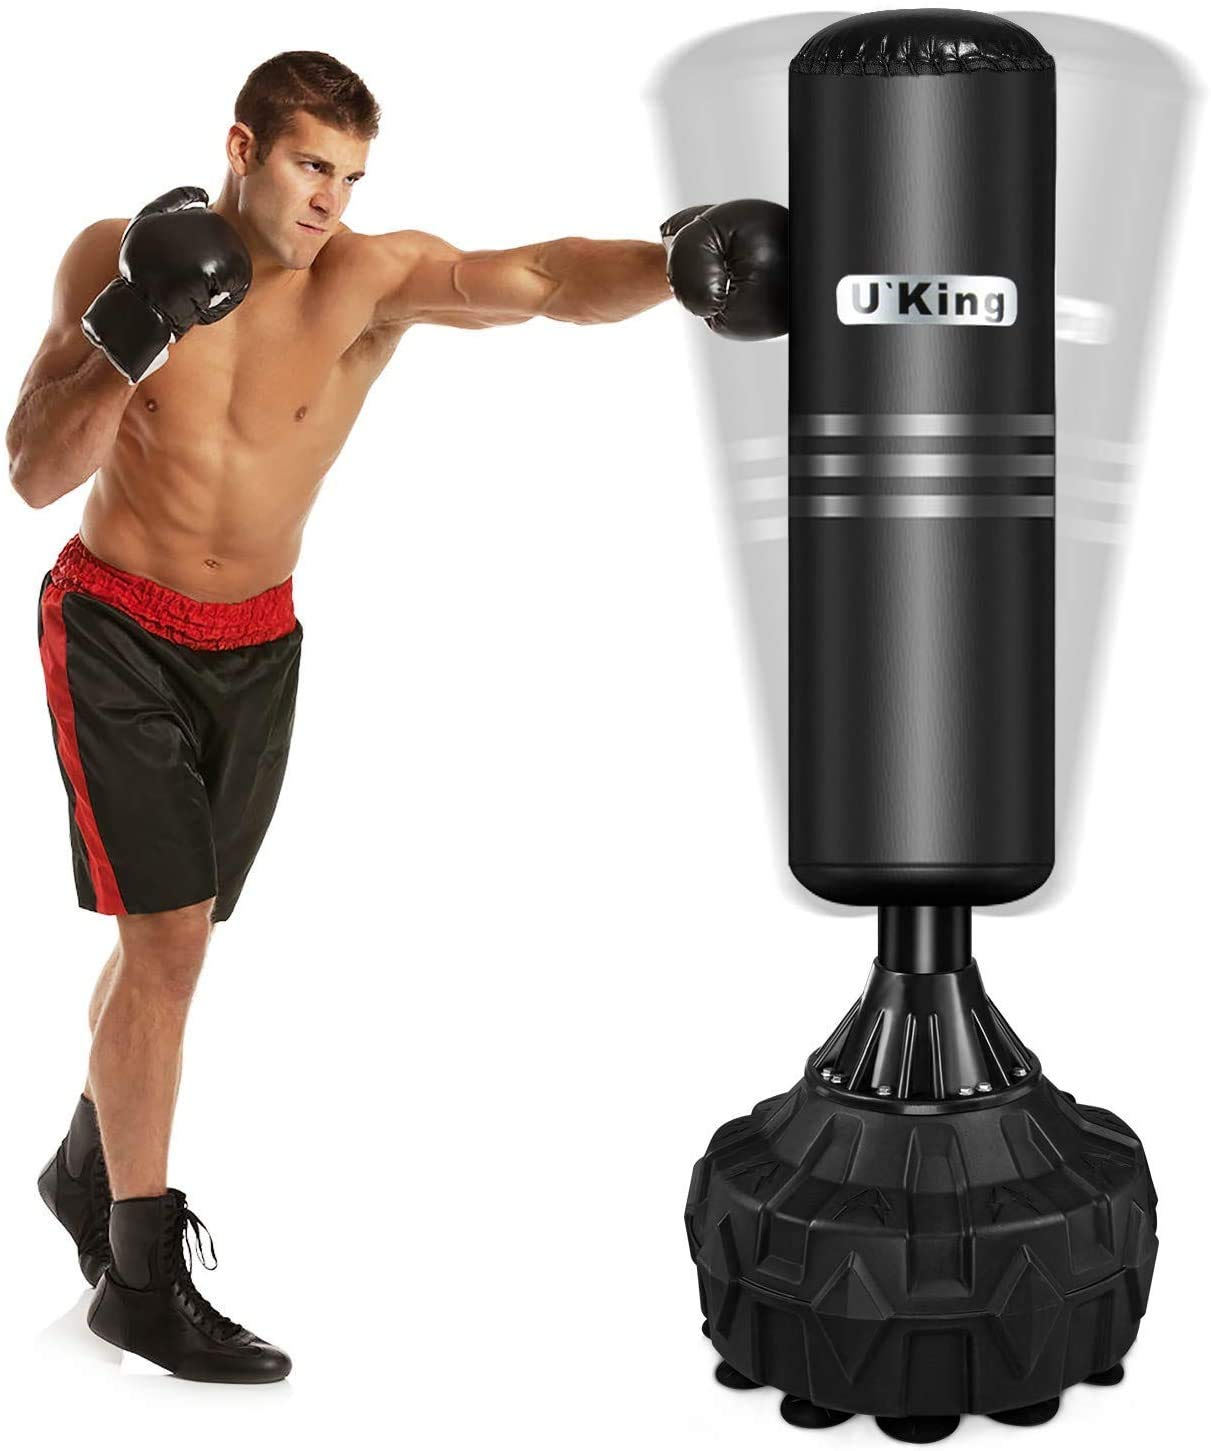 Heavy Duty Free Standing Boxing Punch Bag Kick Art UFC Training Indoor Sports UK